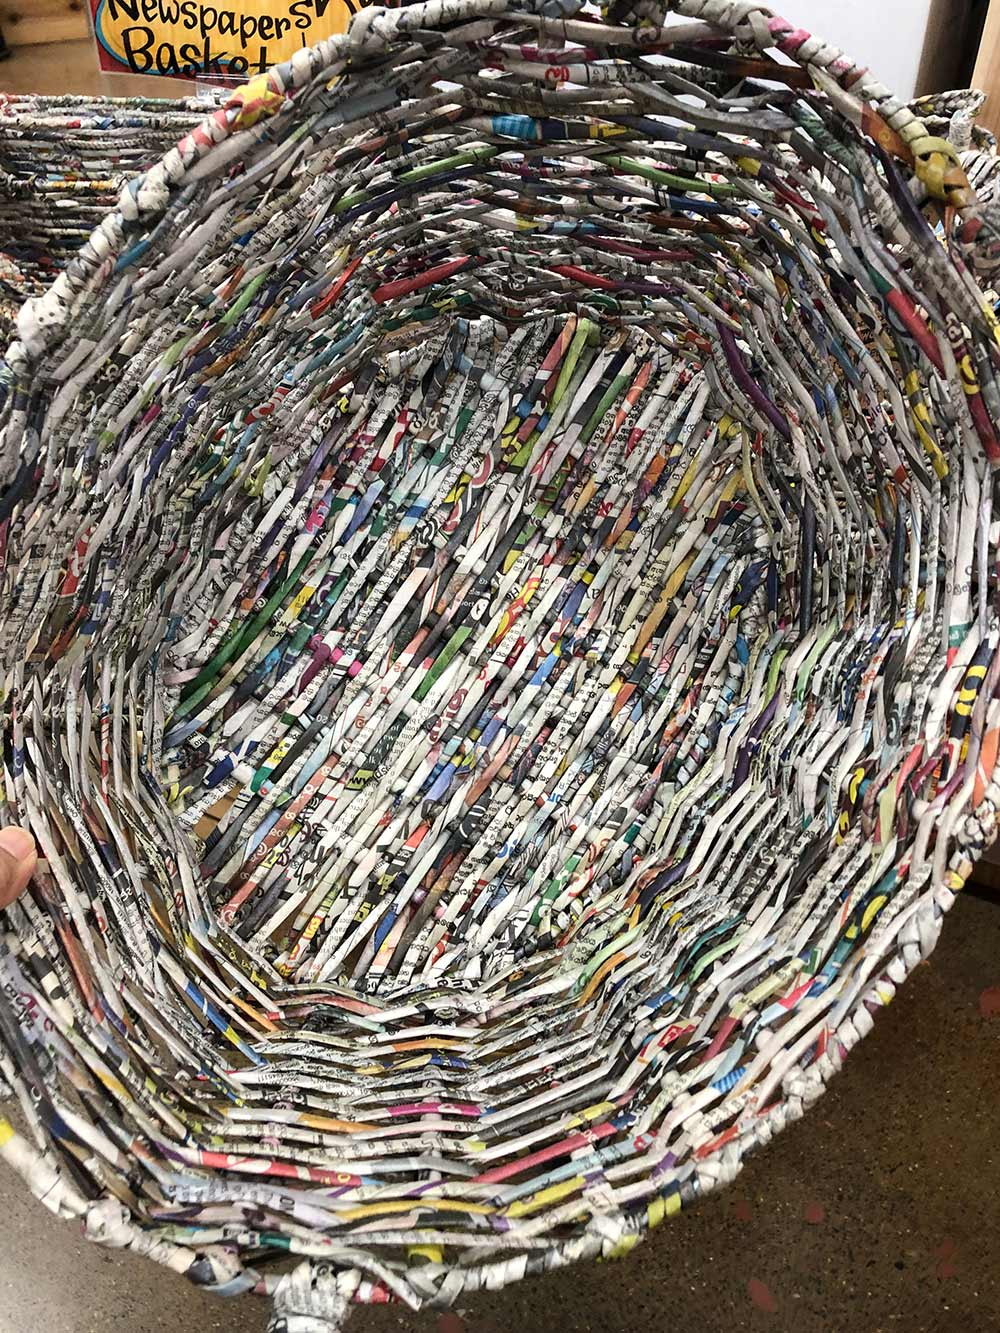 trader joes recycled newspaper baskets top